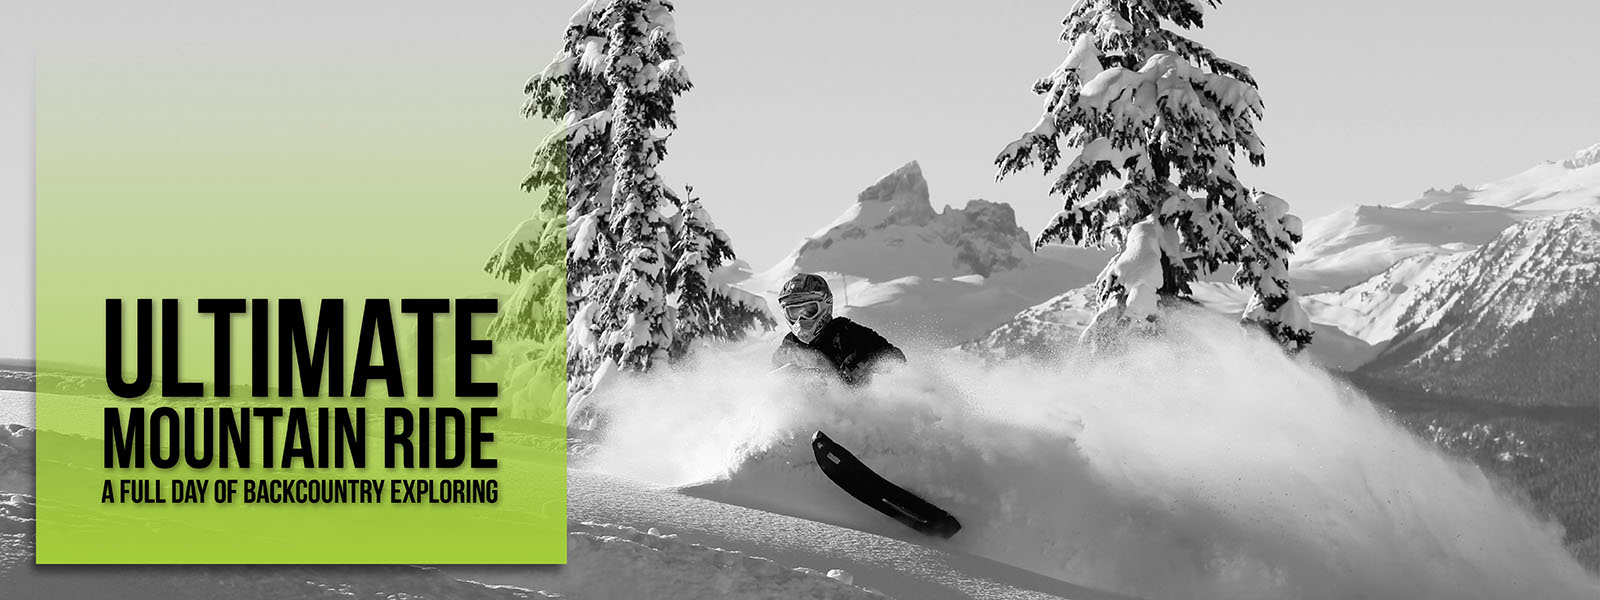 whistler_snowmoblie_headers_tours4